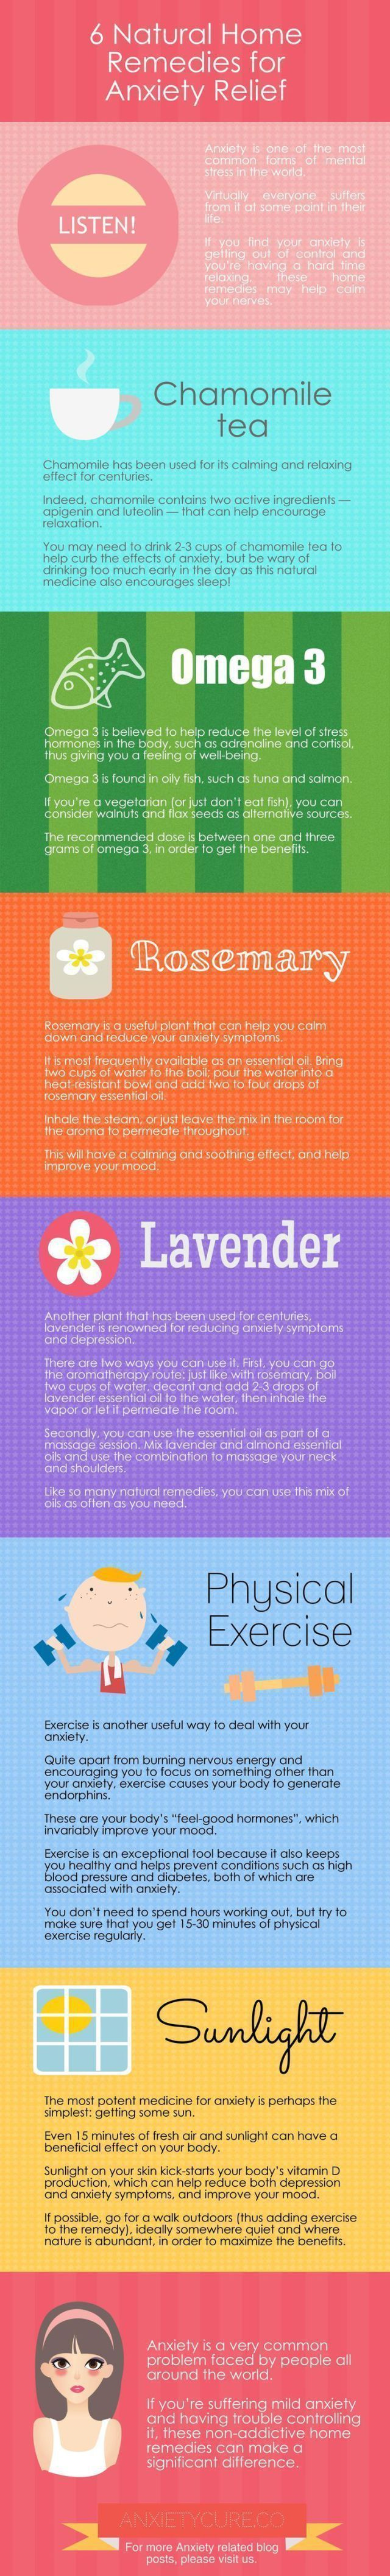 Psychology : Psychology : Psychology : 6 Natural Home Remedies for Anxiety Relief Infographic